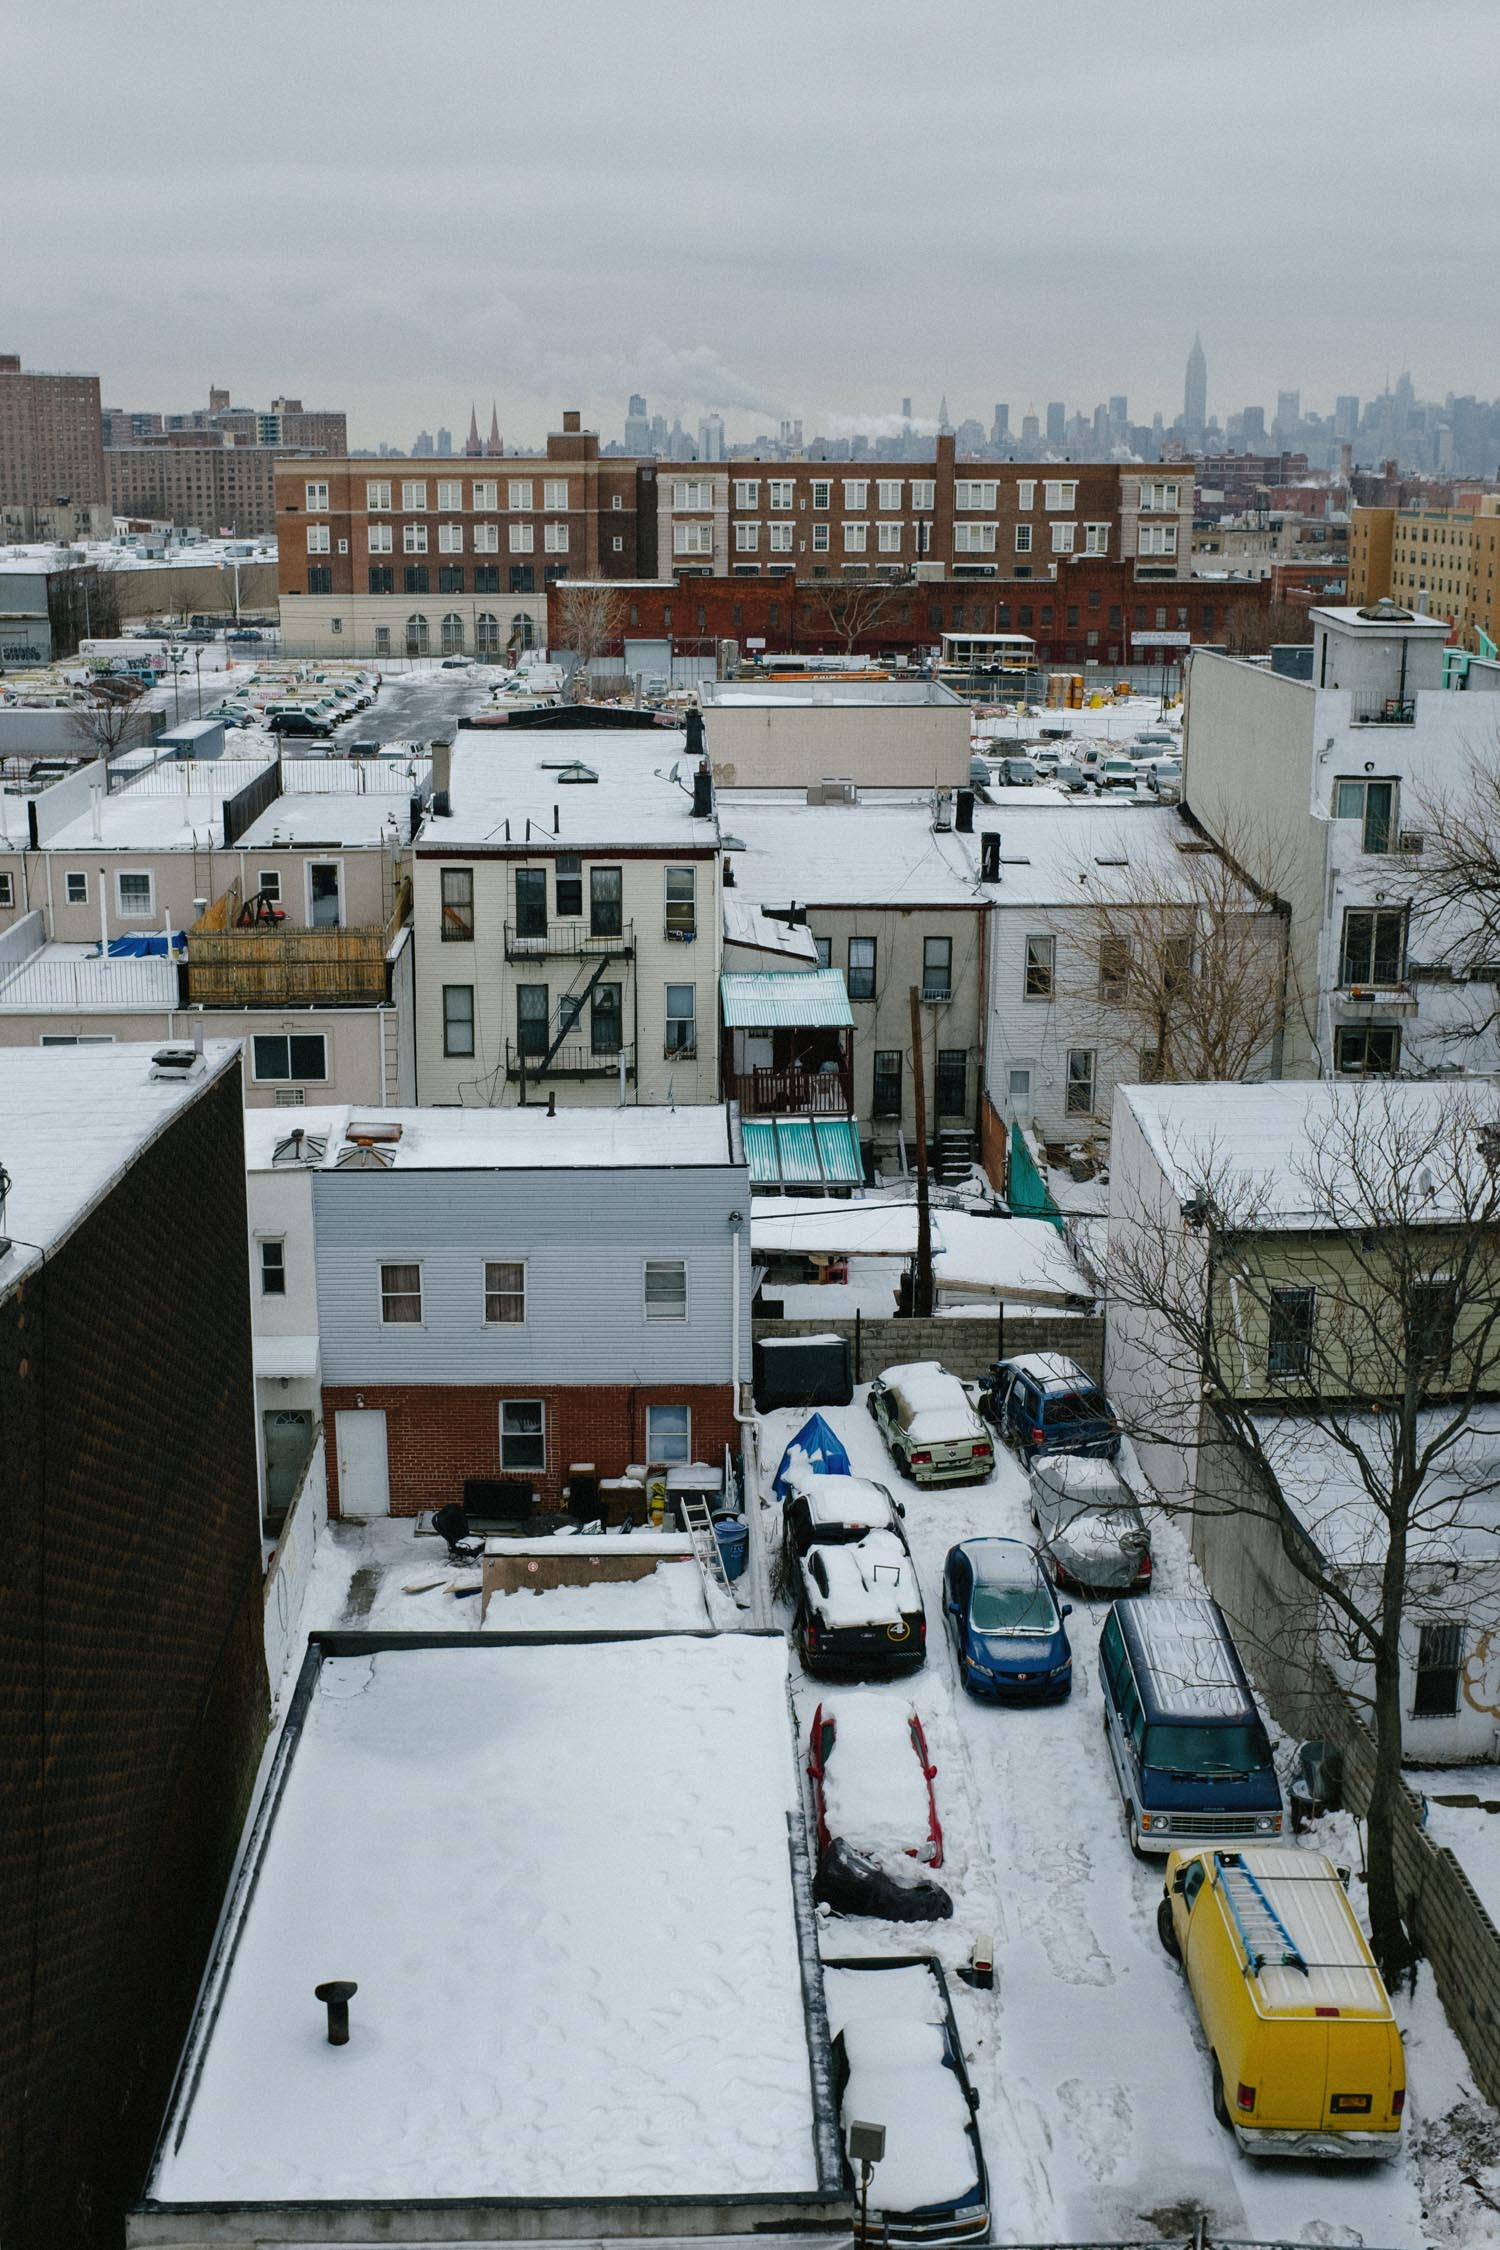 snowy views of manhattan from Brooklyn rooftop